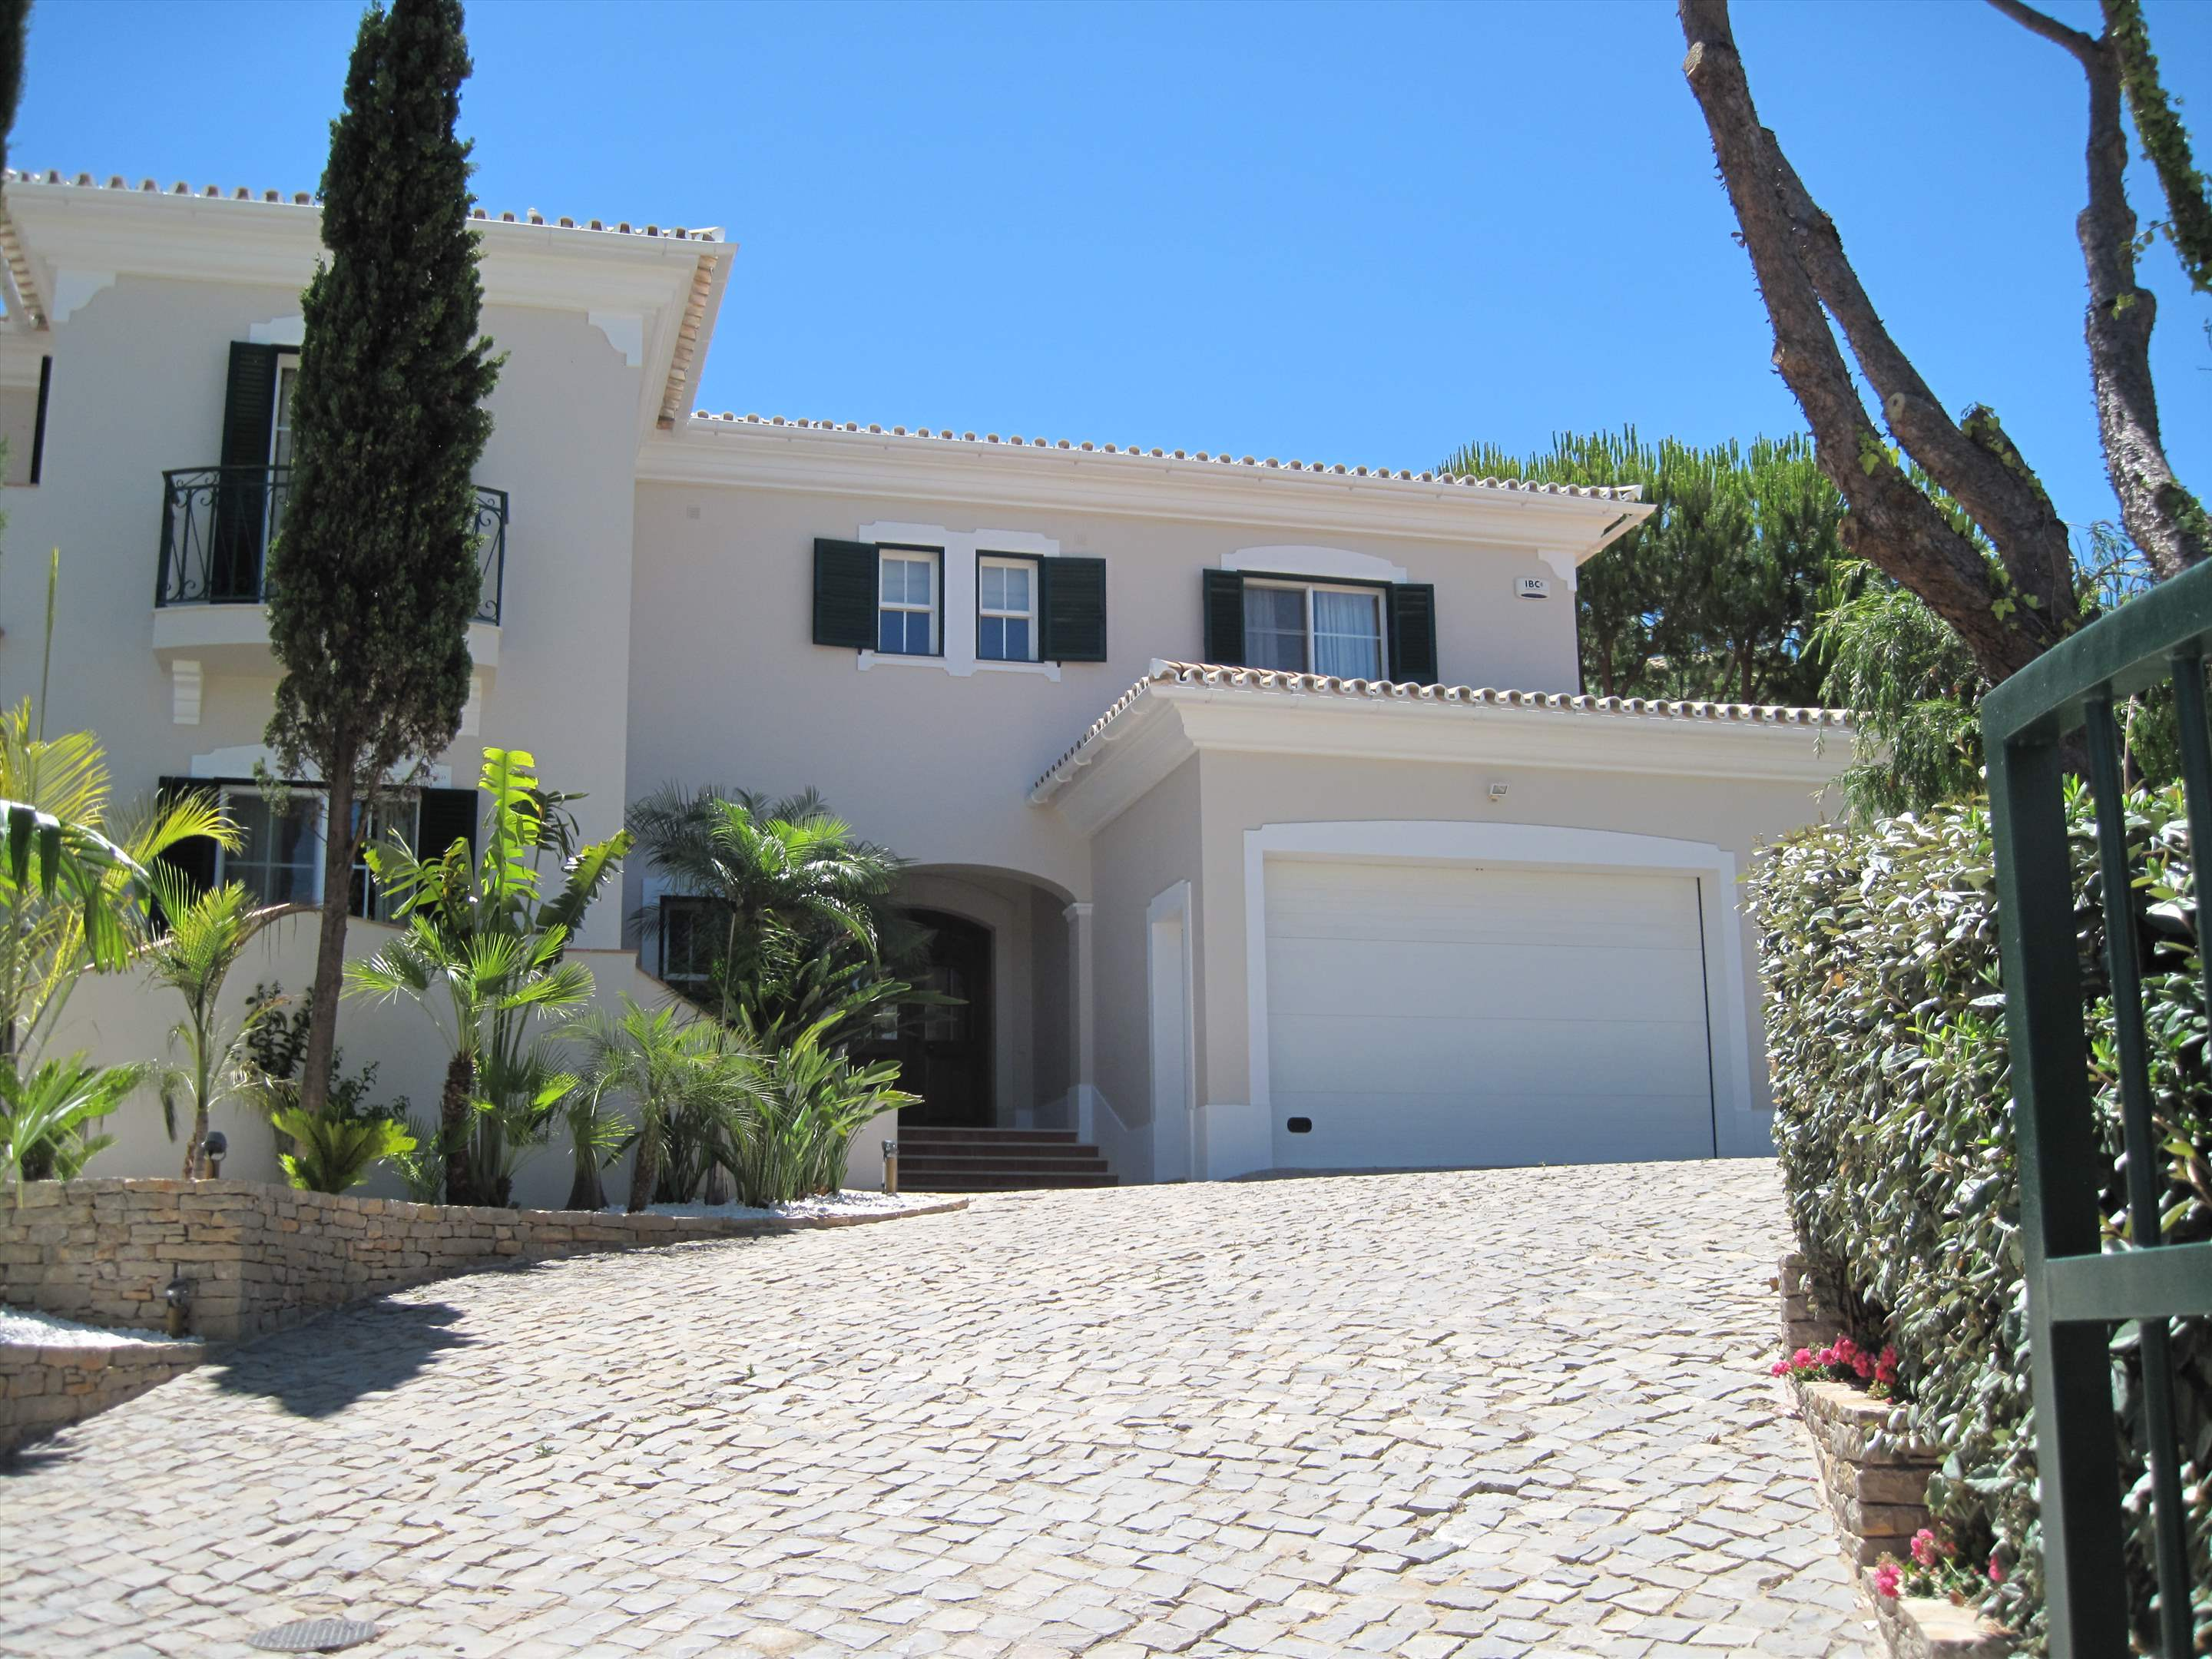 Villa Ariana, 4 bedroom villa in Dunas Douradas, Algarve Photo #10